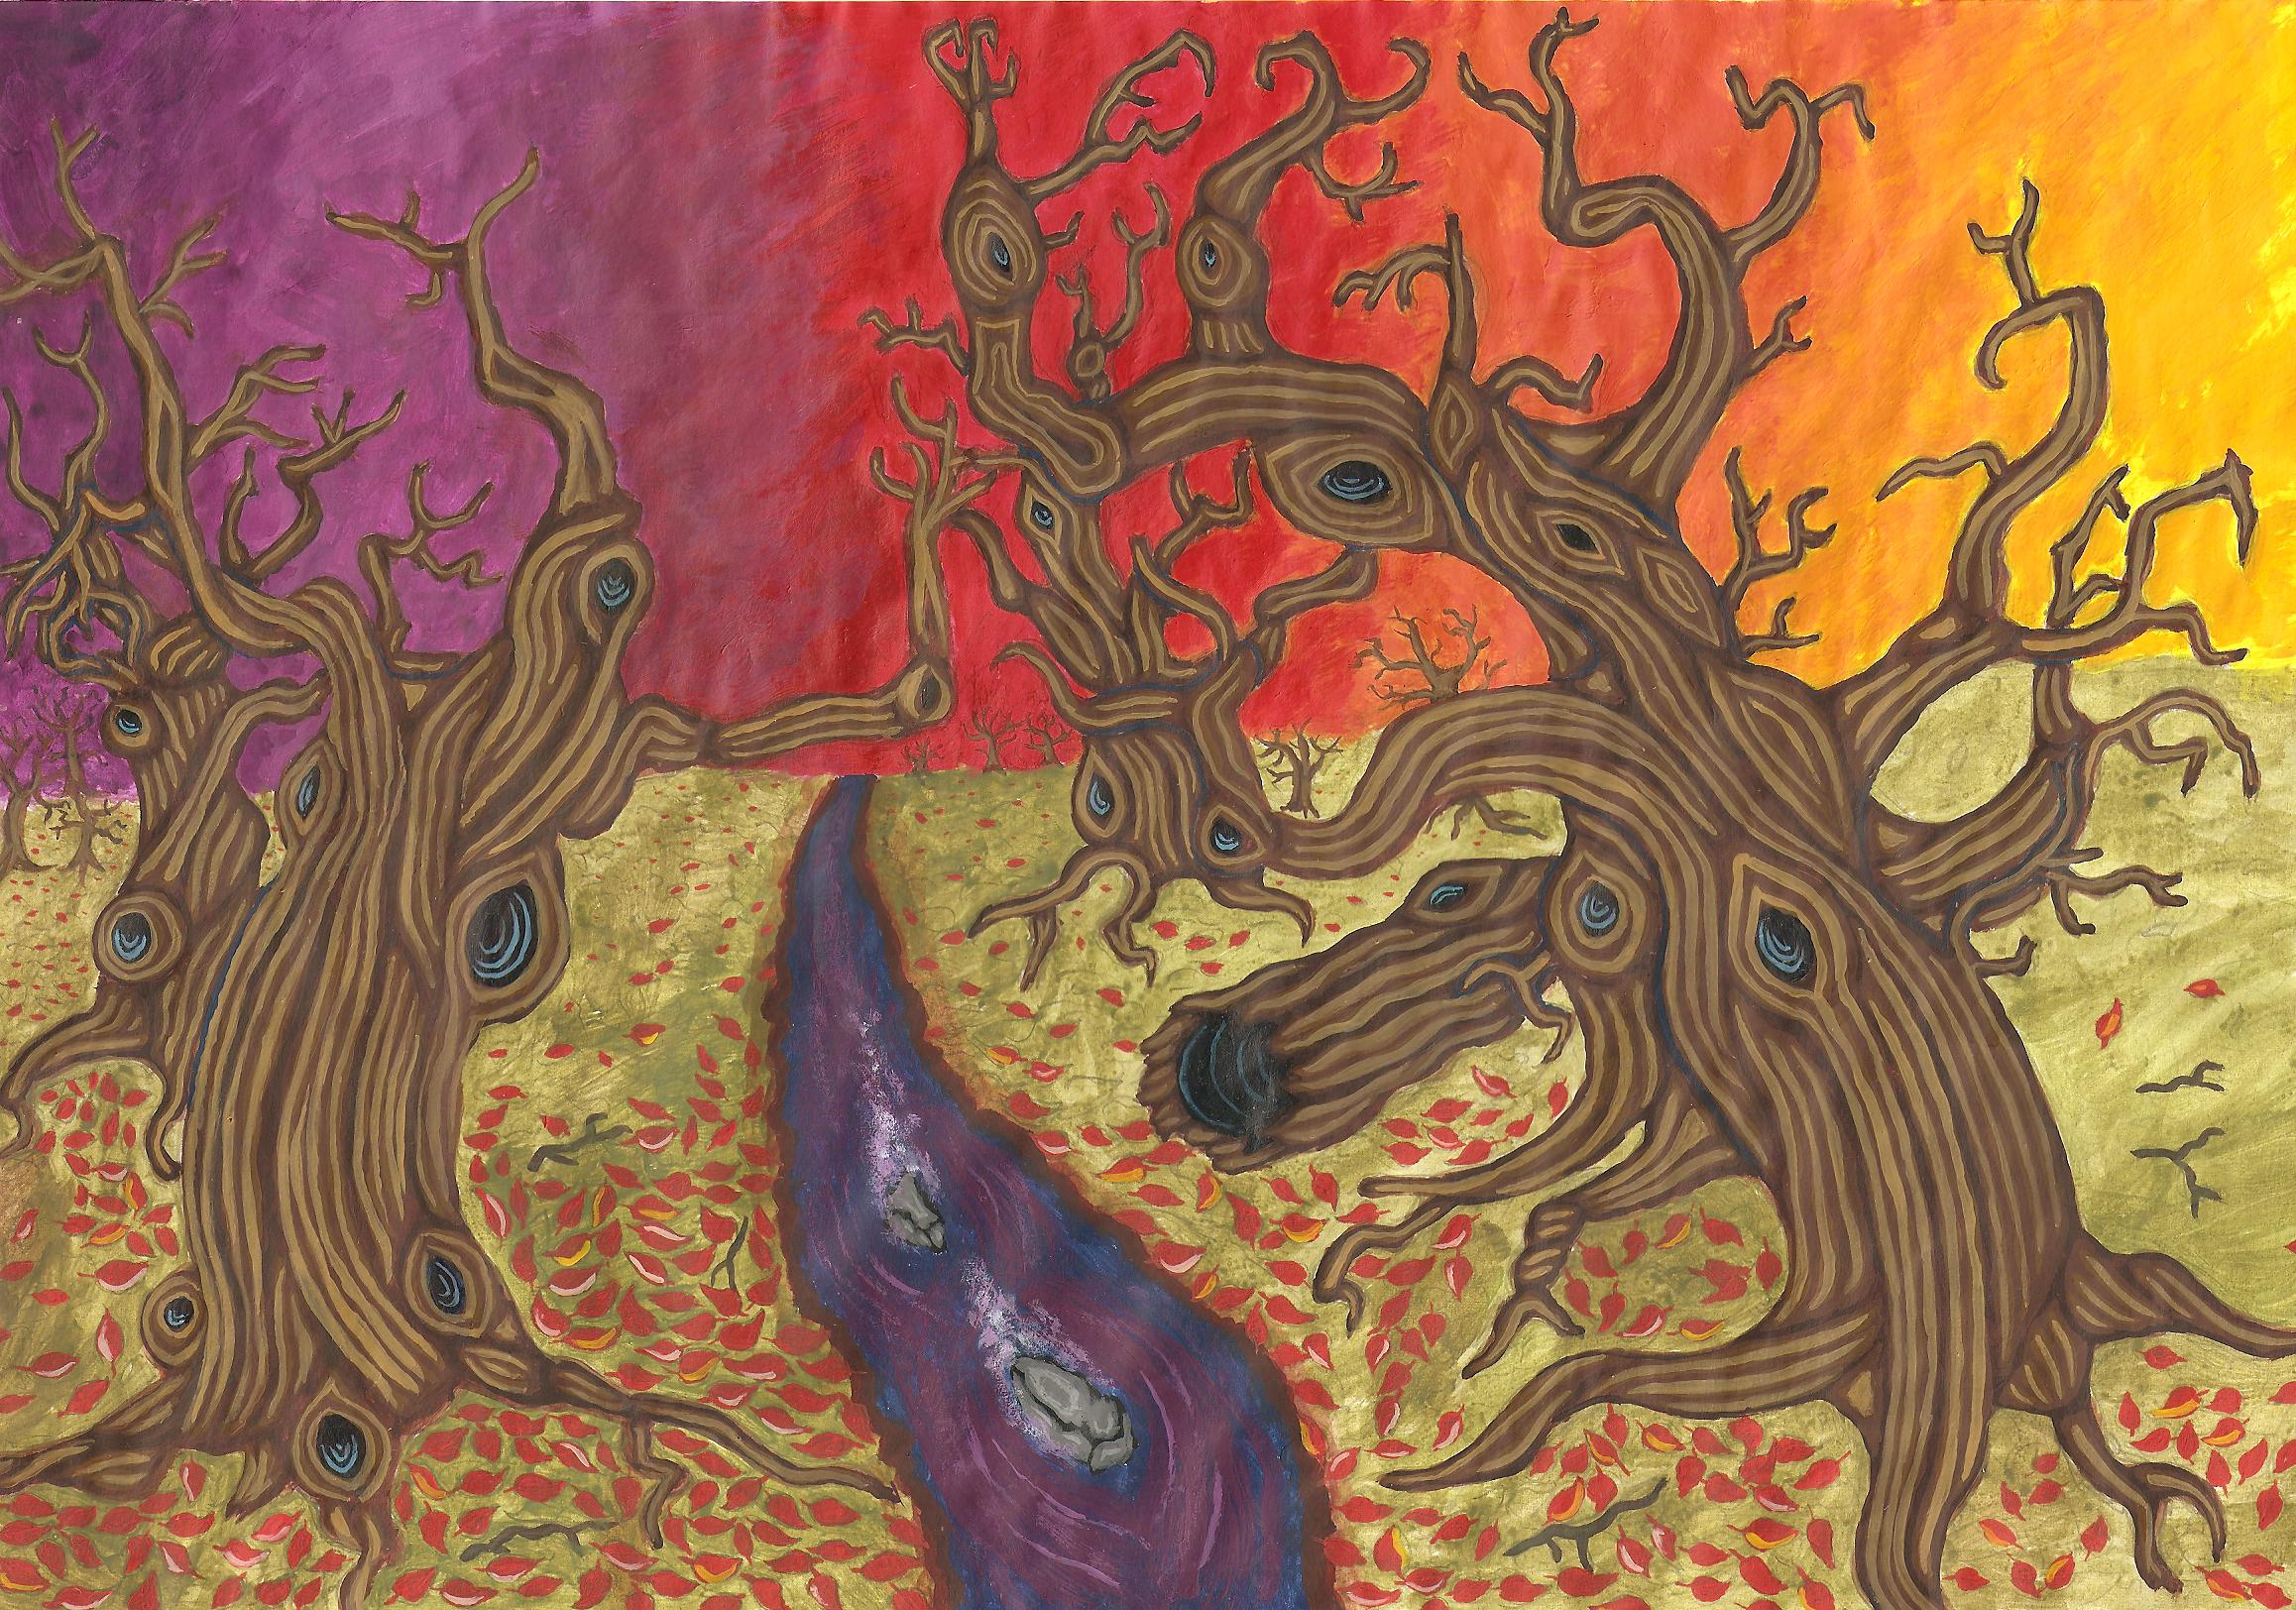 fauvism case study Learn art 188 with free interactive flashcards choose from 500 different sets of art 188 flashcards on quizlet.